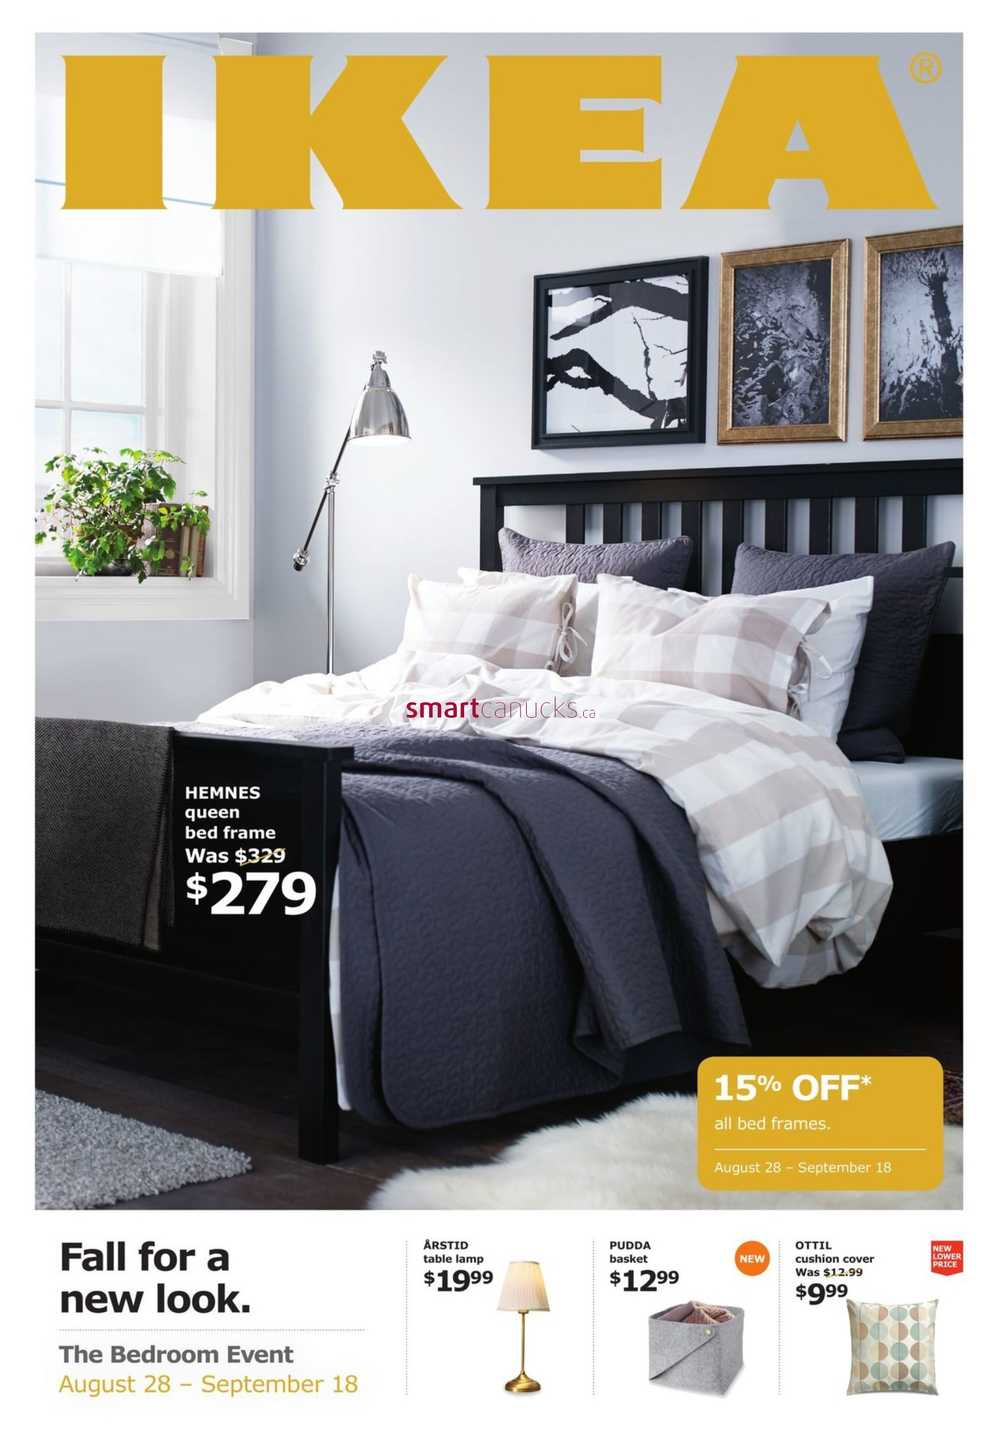 Ikea Bed Frames Event Flyer August 28 To September 18